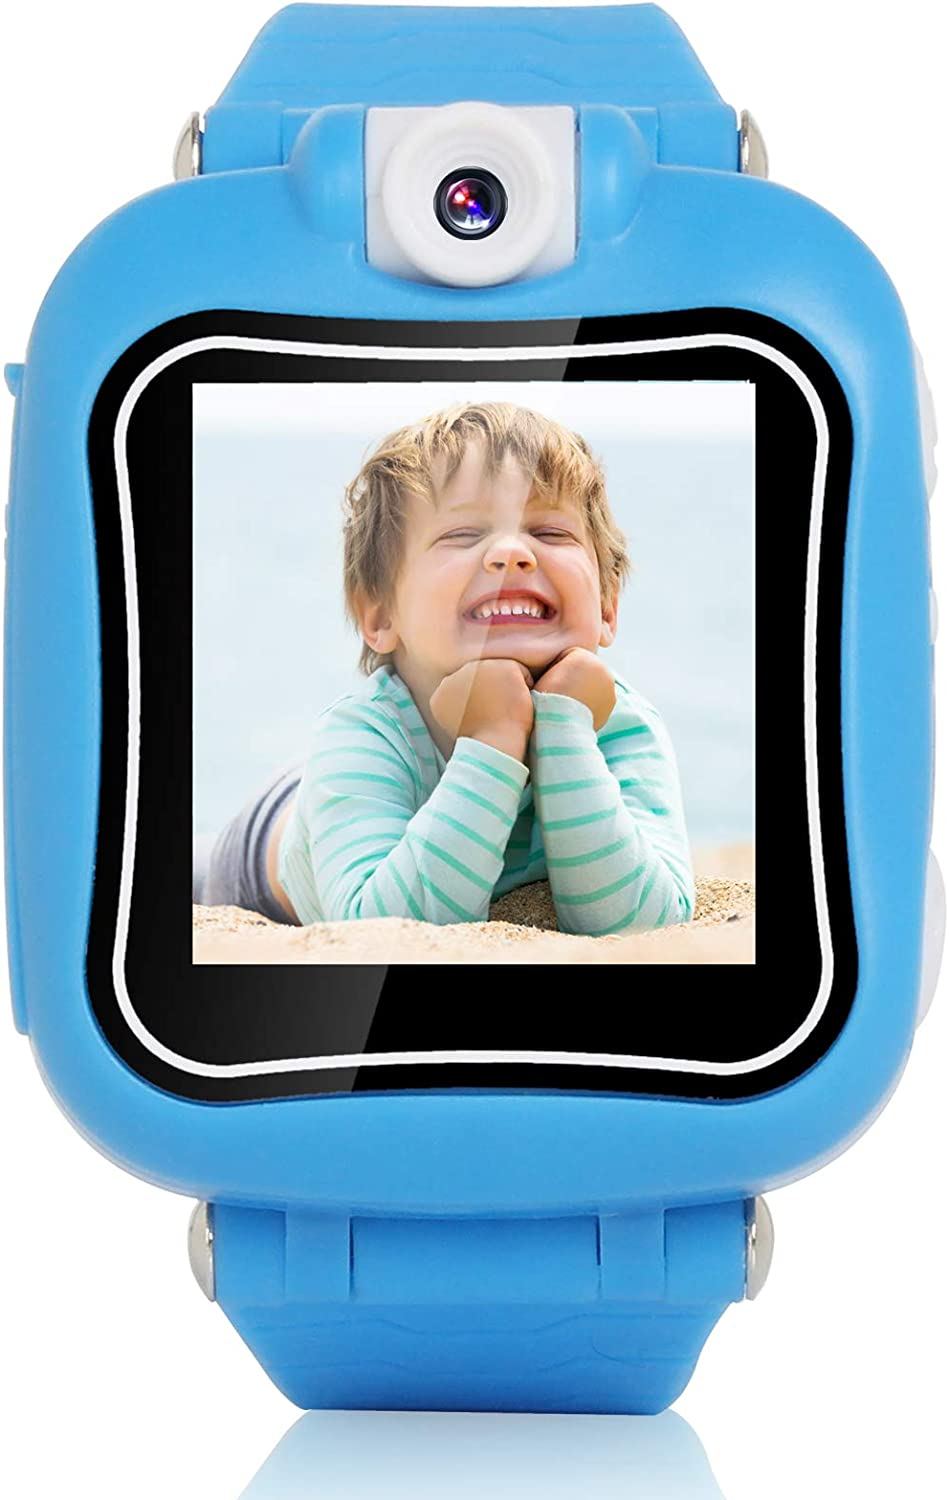 iCore Smart Watch for Kids, Kids Camera, Digital Smart Watch for Kids Boys, Digital Kid Watches Built in Selfie-Camera, Blue Watch with Toys Video Games for kids ages 4-8